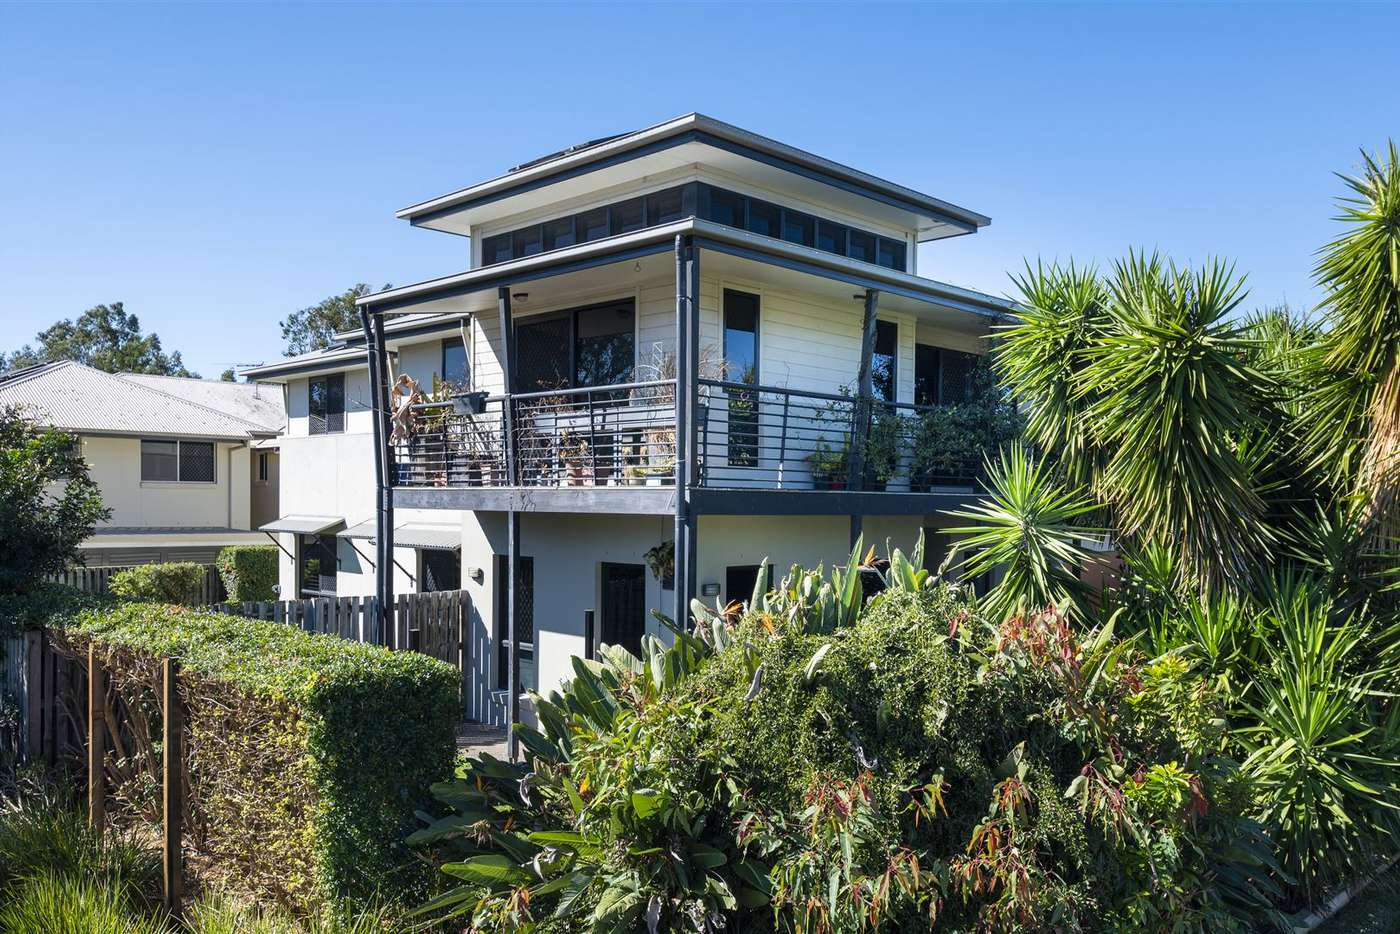 Main view of Homely house listing, 15 Starlight Place, Aspley QLD 4034